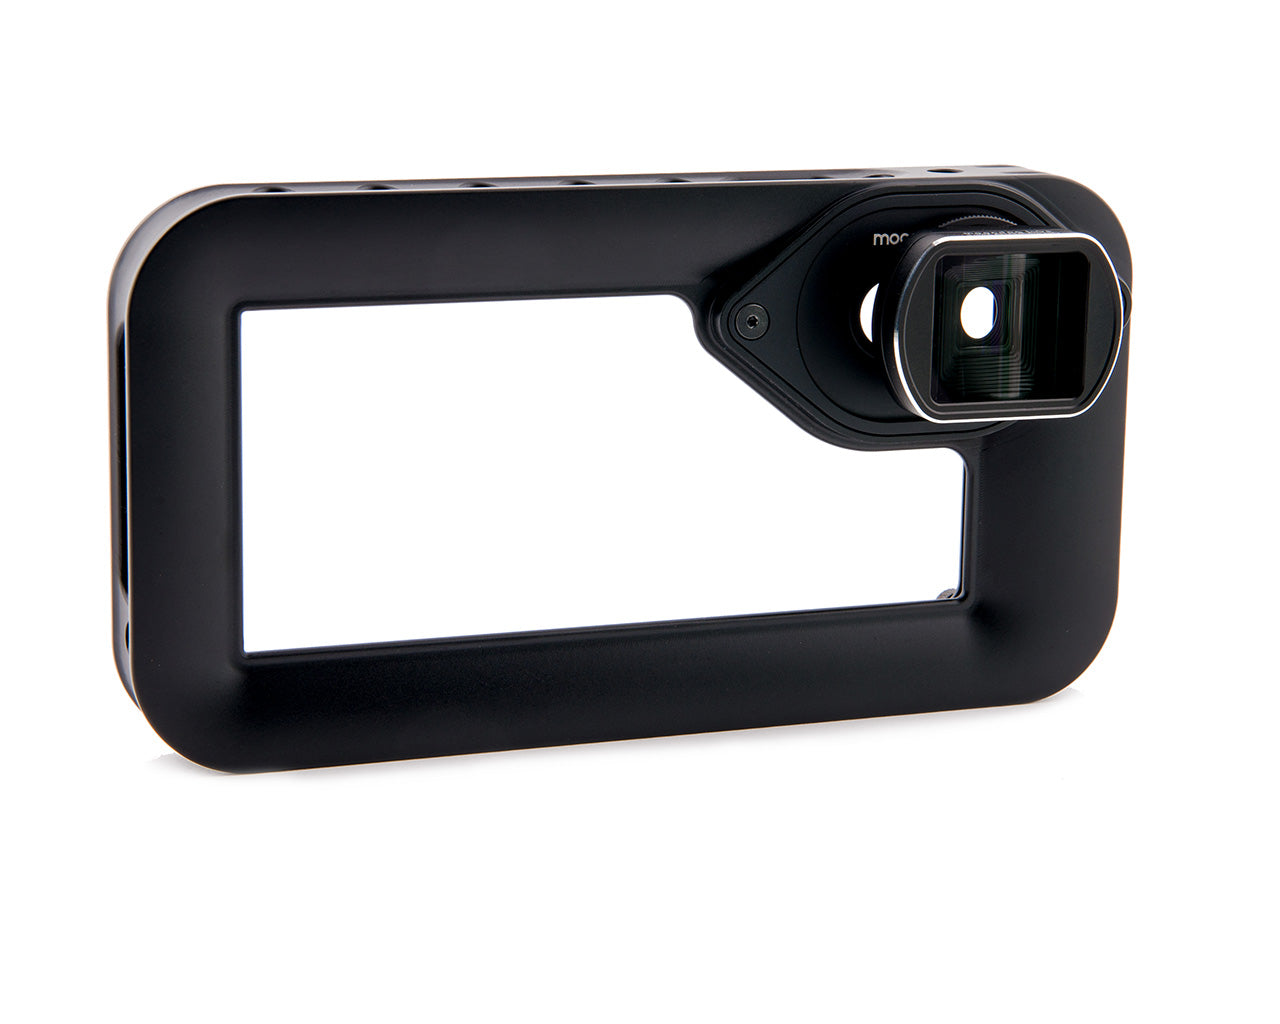 new product 2cc55 c5ba5 12.5 mm Lens Mount - for HeliumCore/iPhone X